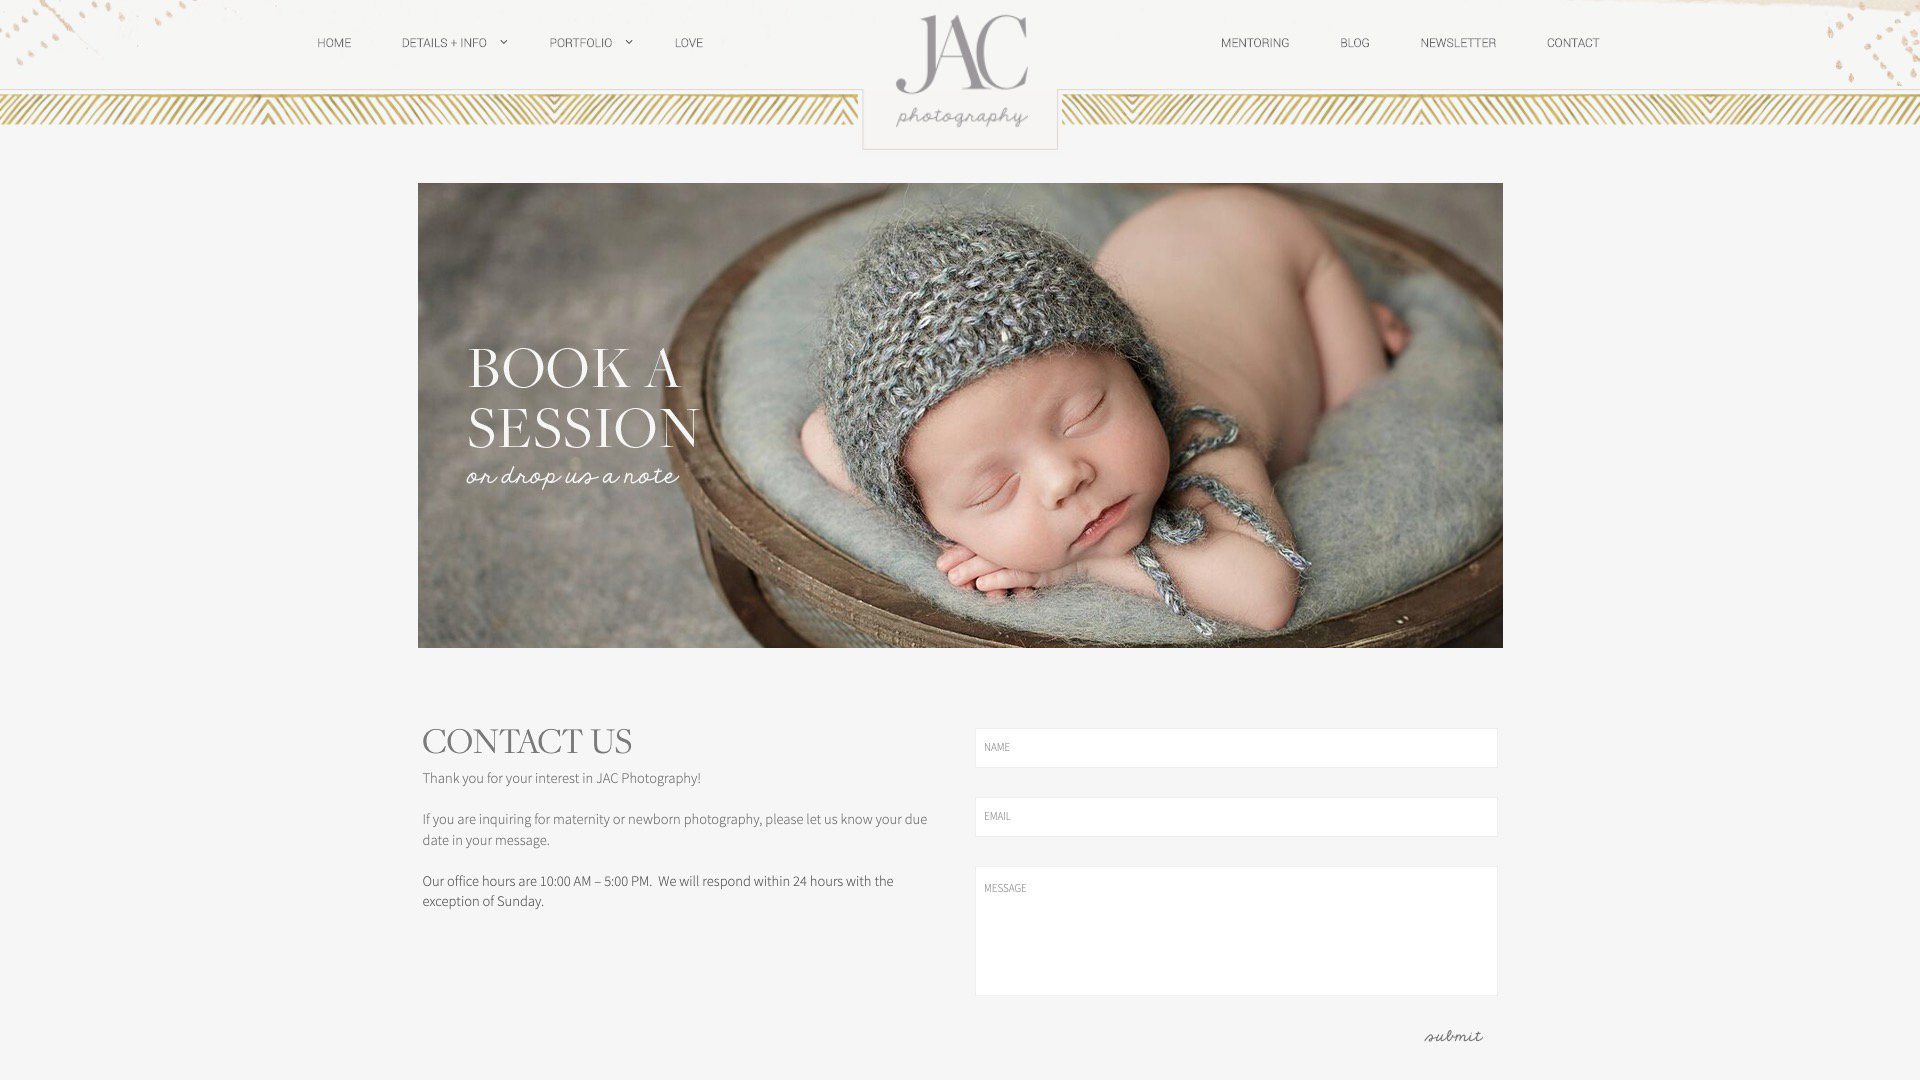 A Photo Of JAC Photography's Contact Page